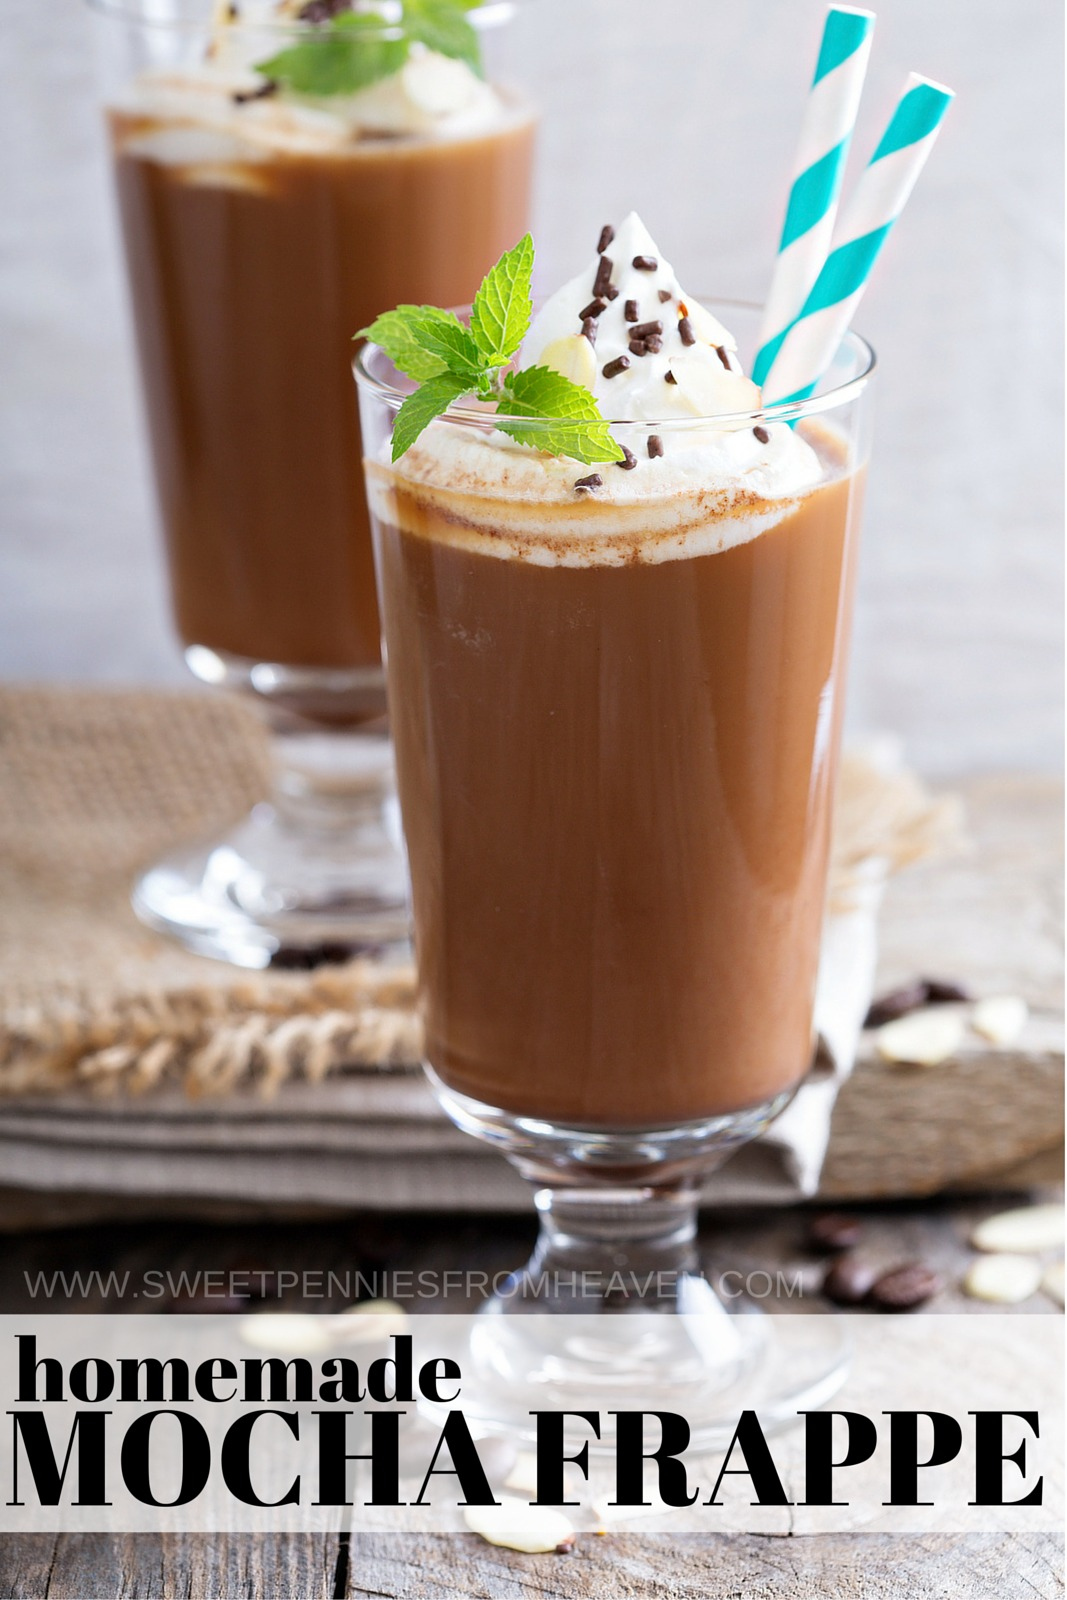 Mocha Frappe Homemade Recipe: Tastes